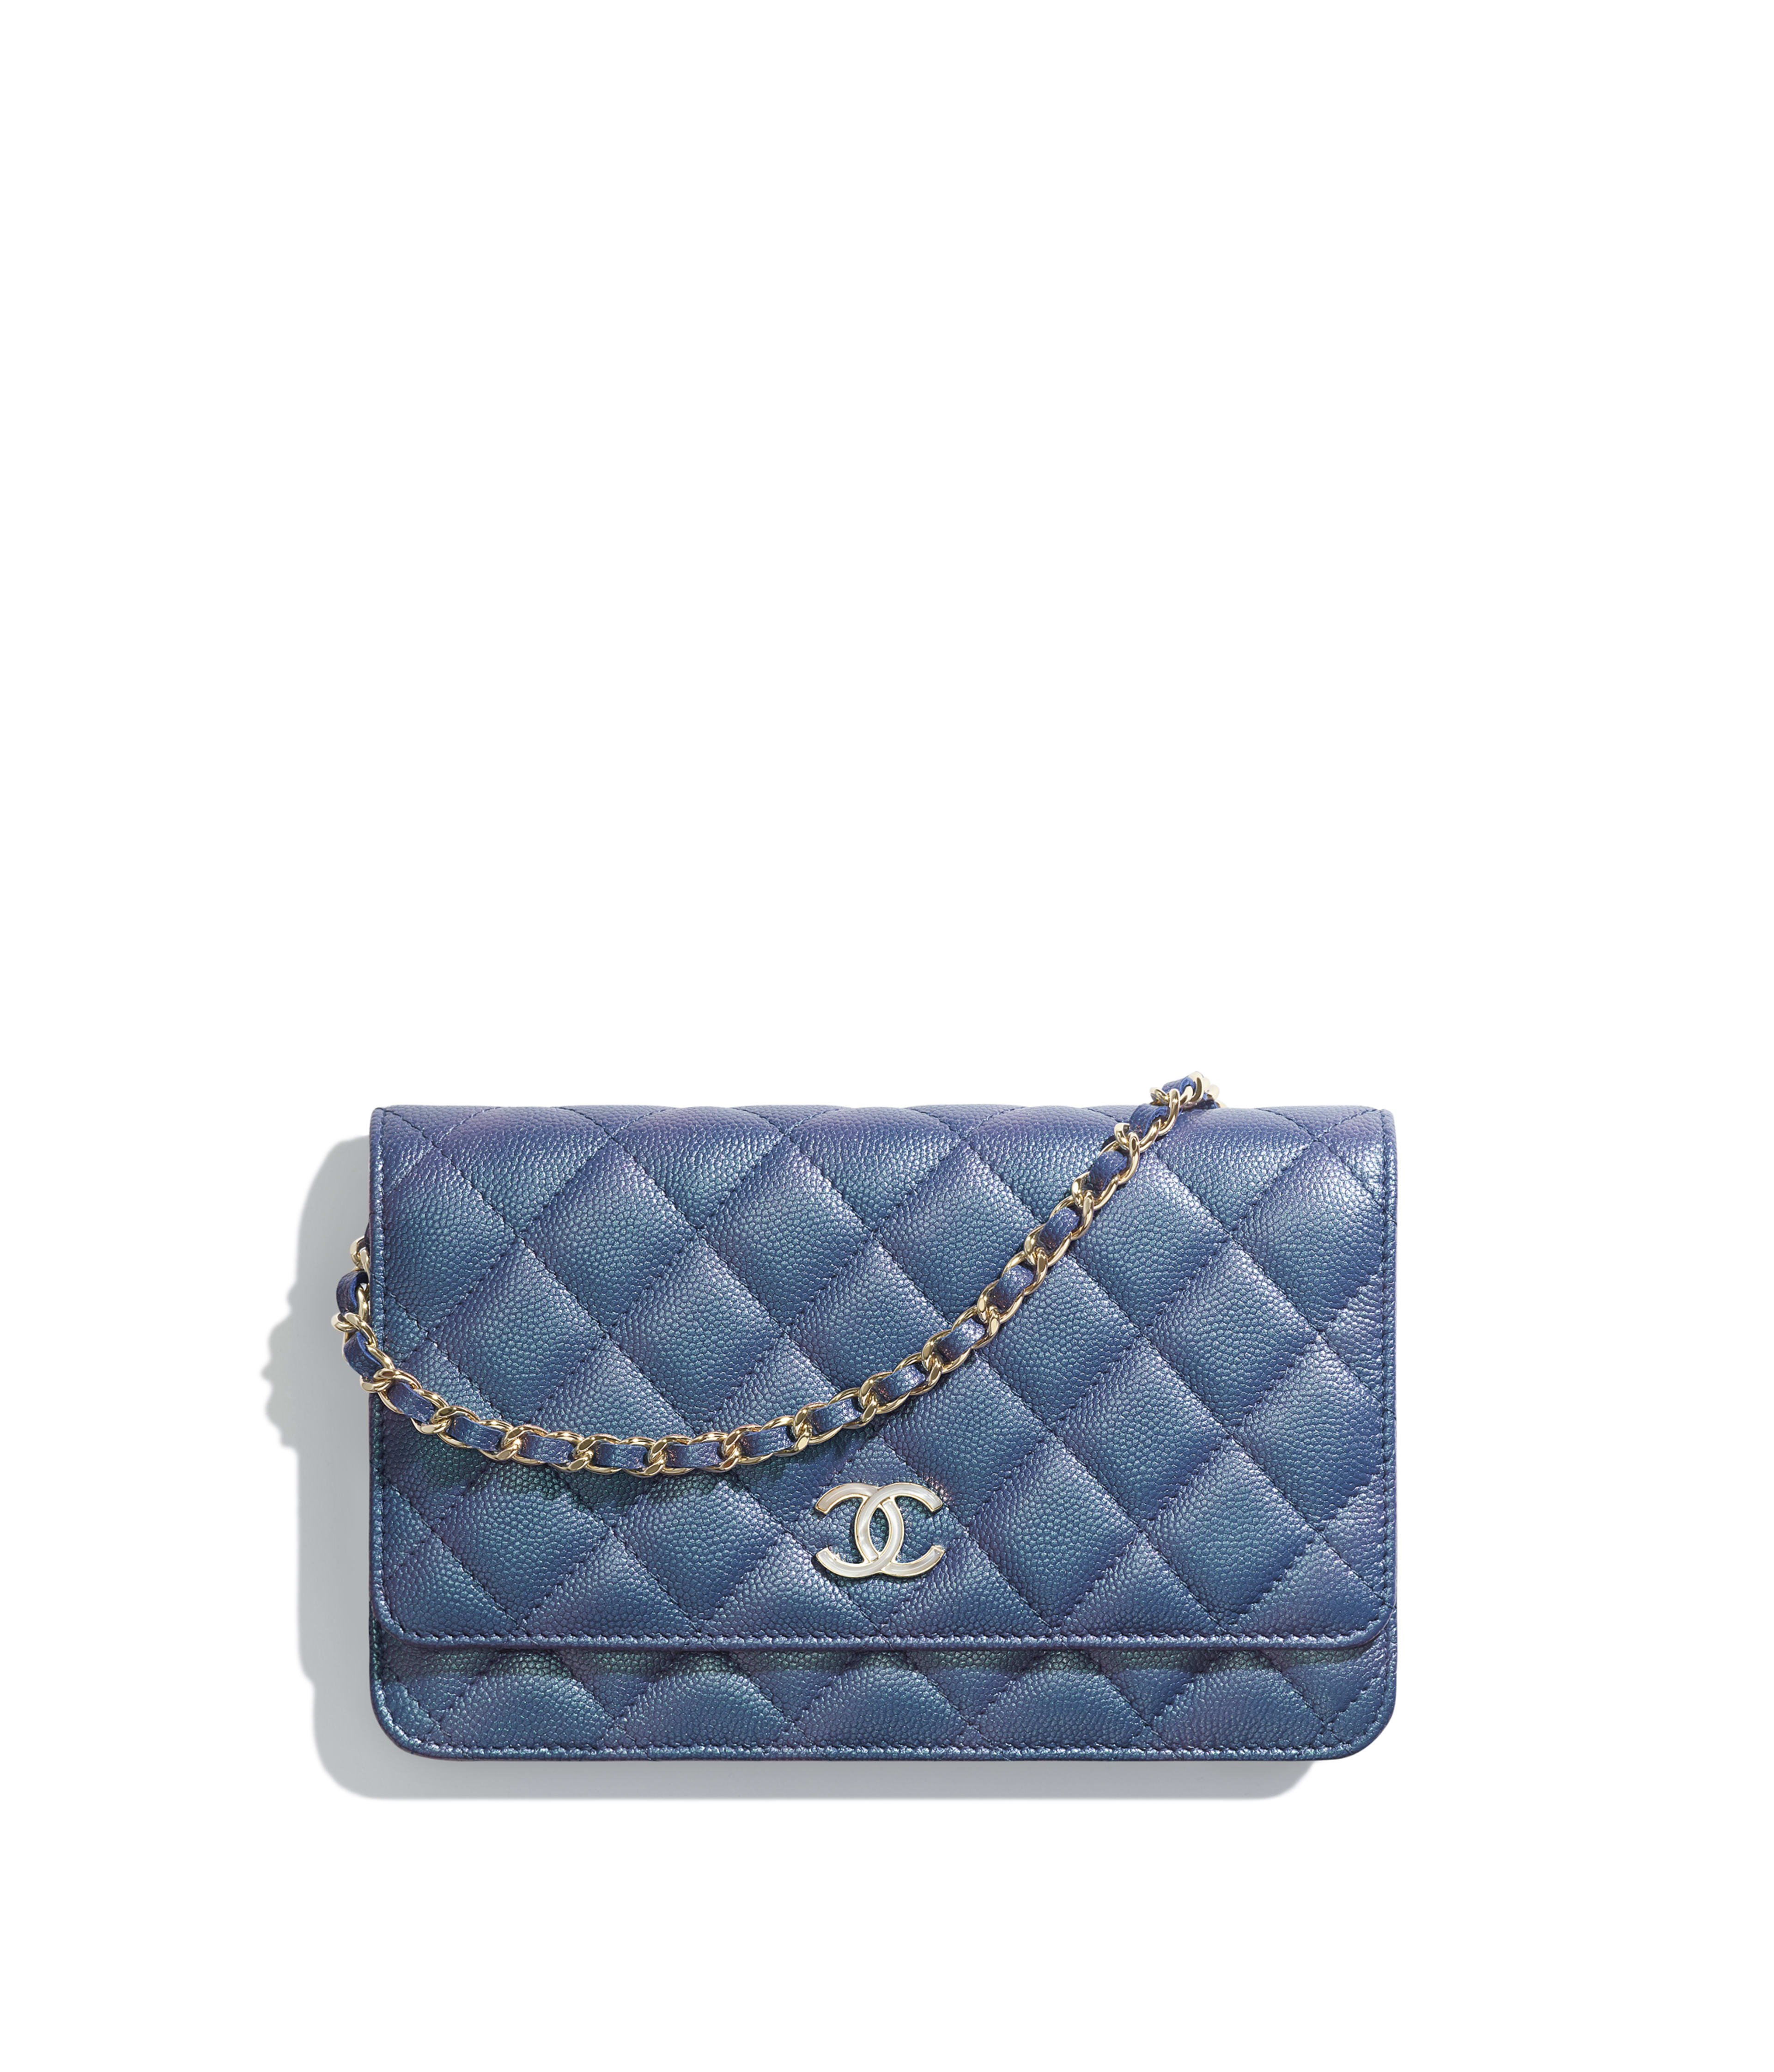 b2b256e8 Wallets on Chain - Small leather goods | CHANEL